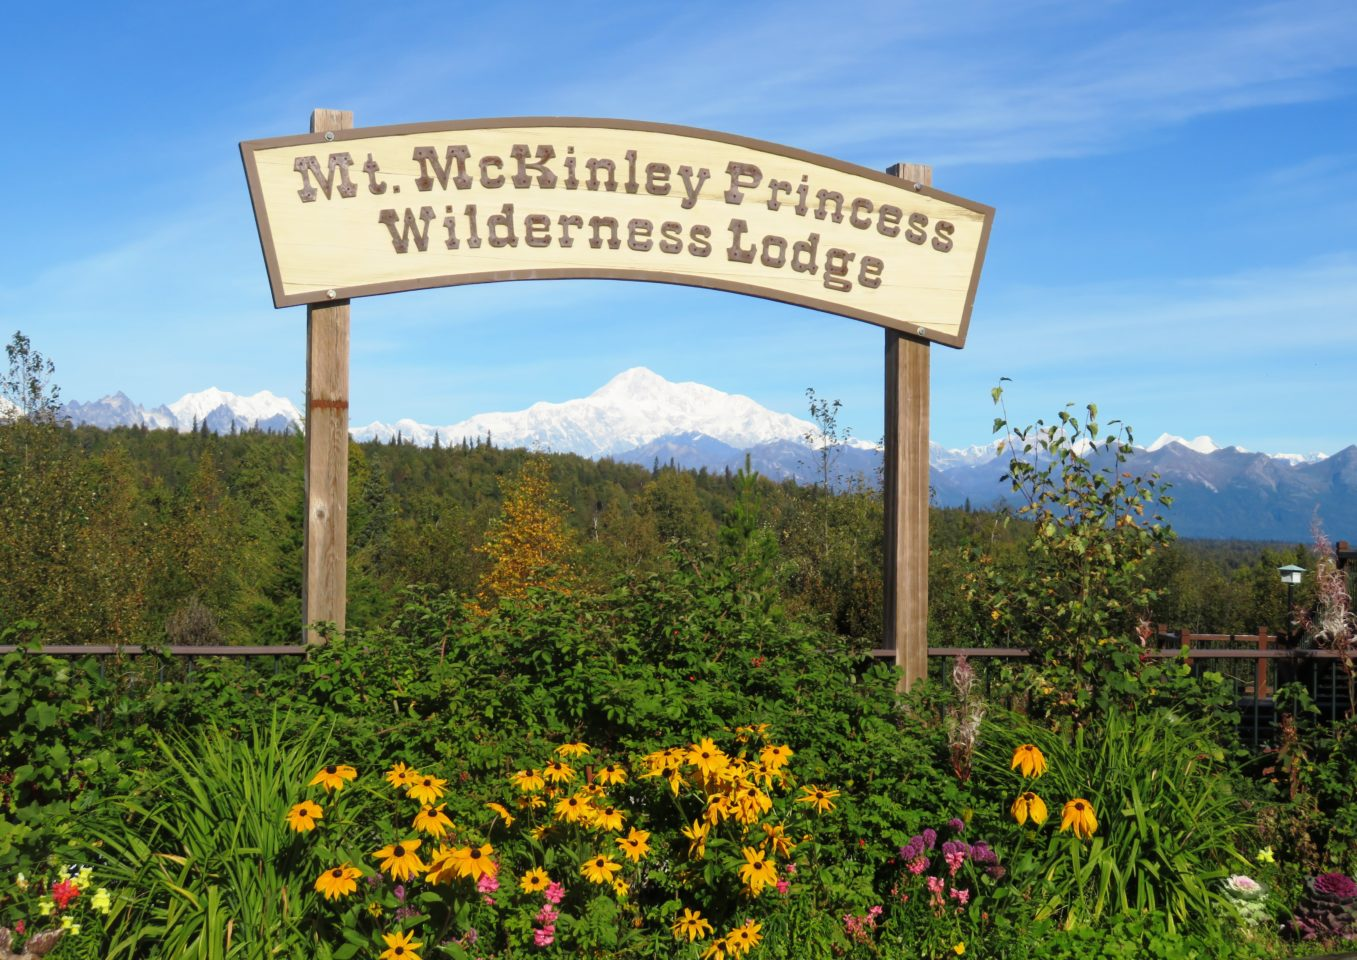 Mount Denali viewed from Mt. McKinley Princess Wilderness Lodge in Alaska